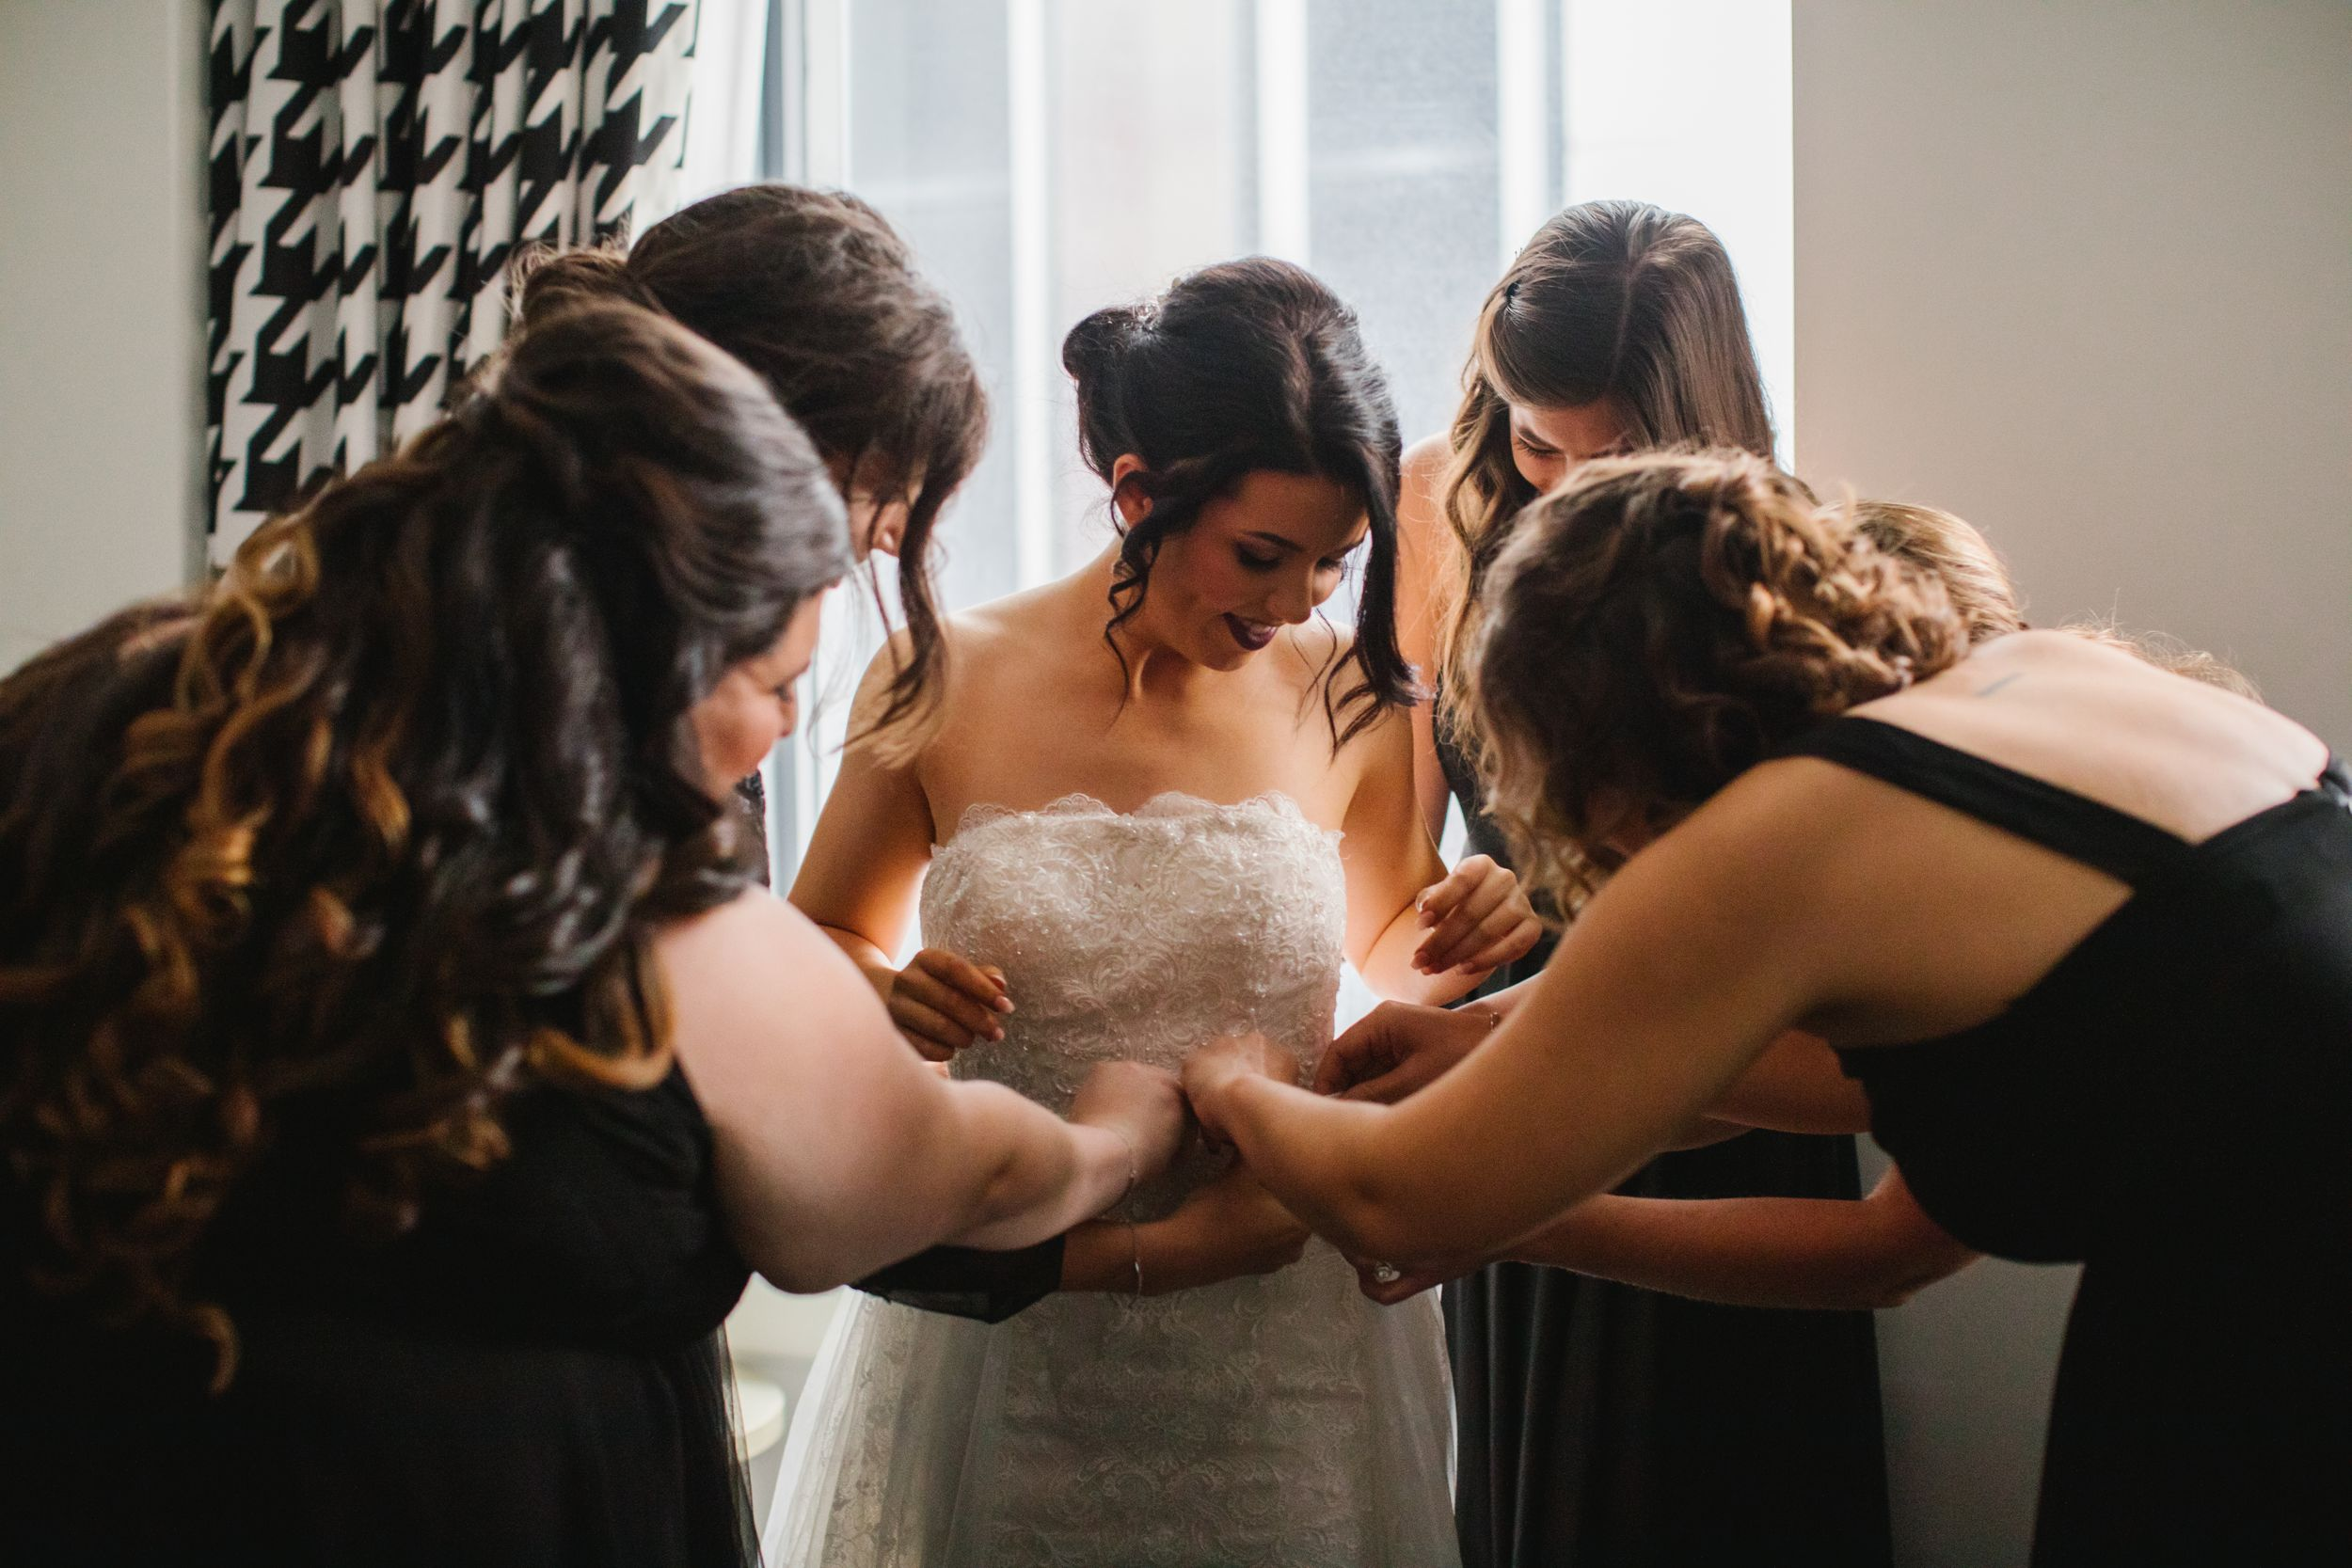 bridesmaids helping put on wedding skirt in front of window